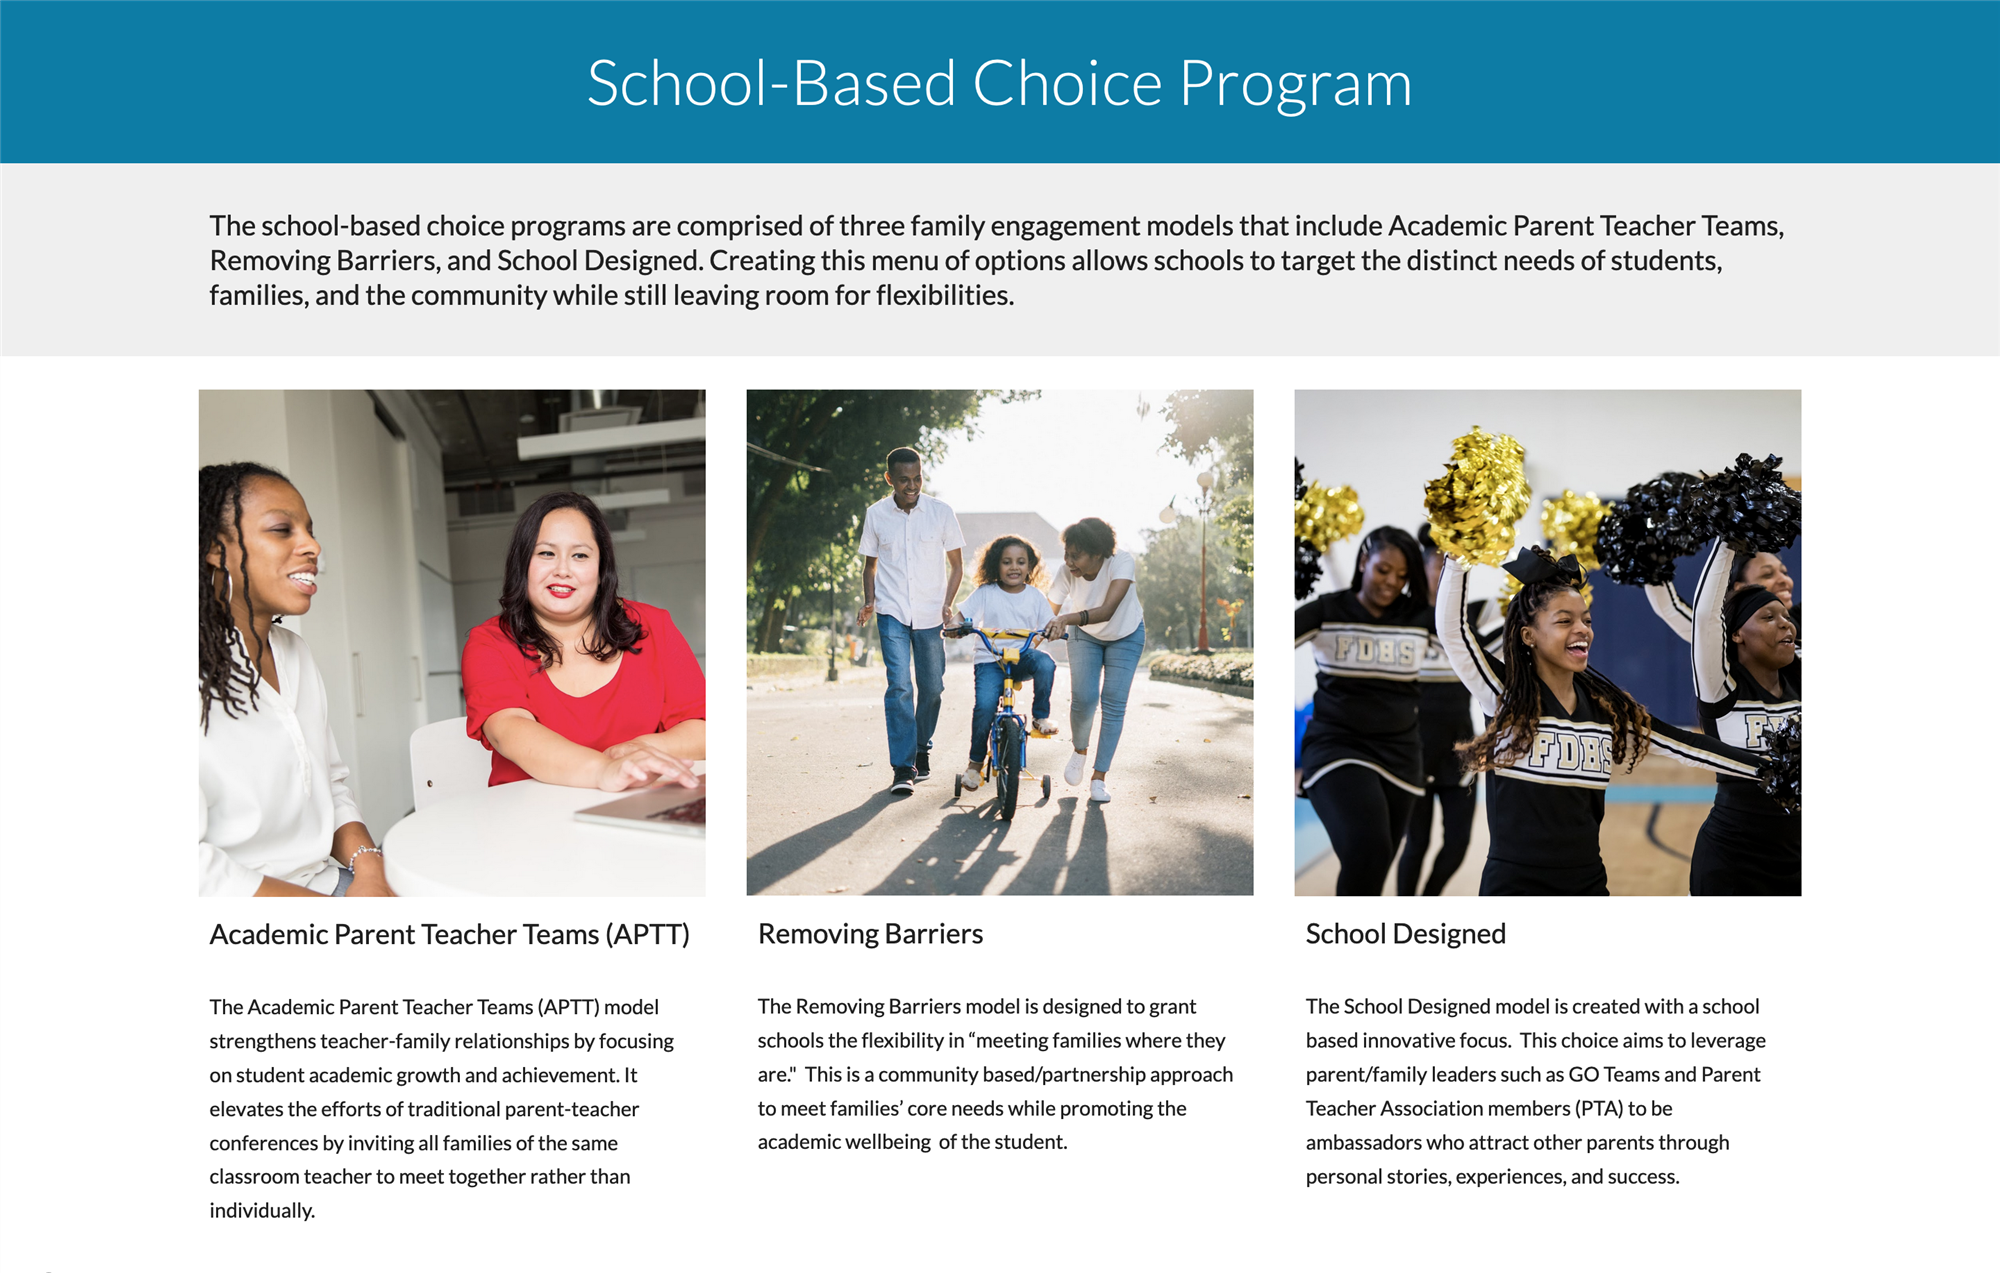 School-Based Choice Program diagram